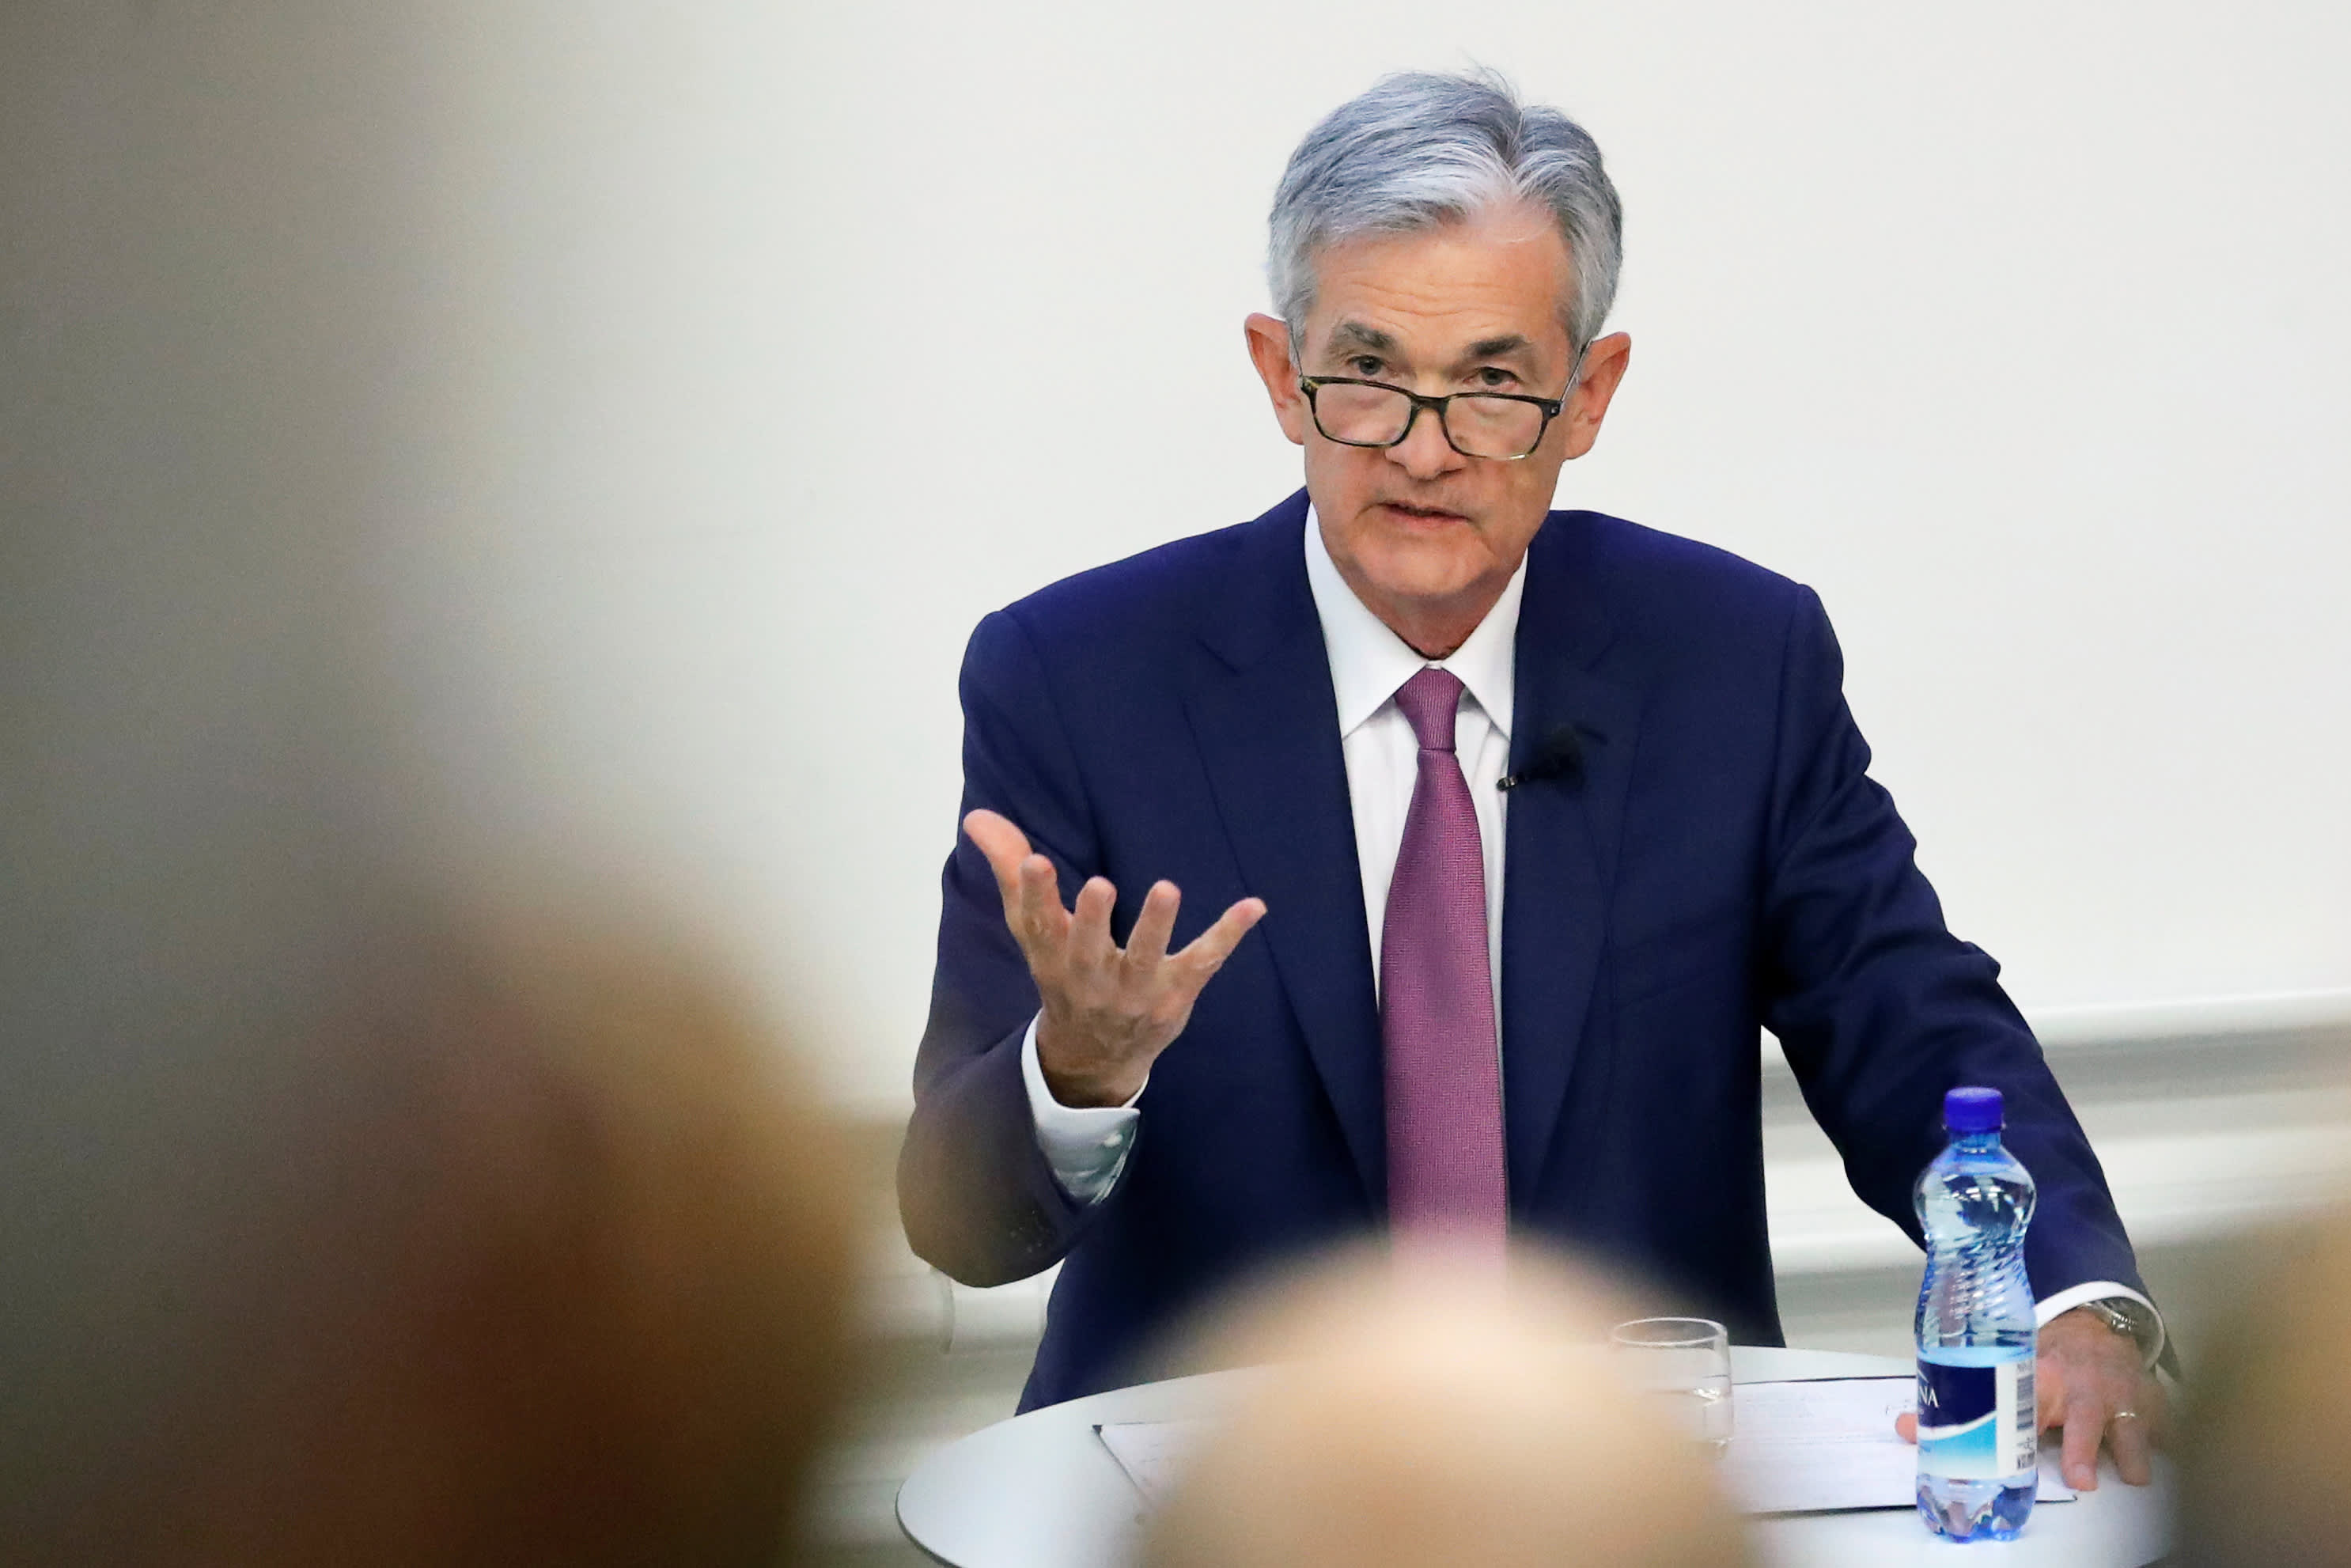 The Fed is looking at a 'standing repo' operation to handle overnight funding issues